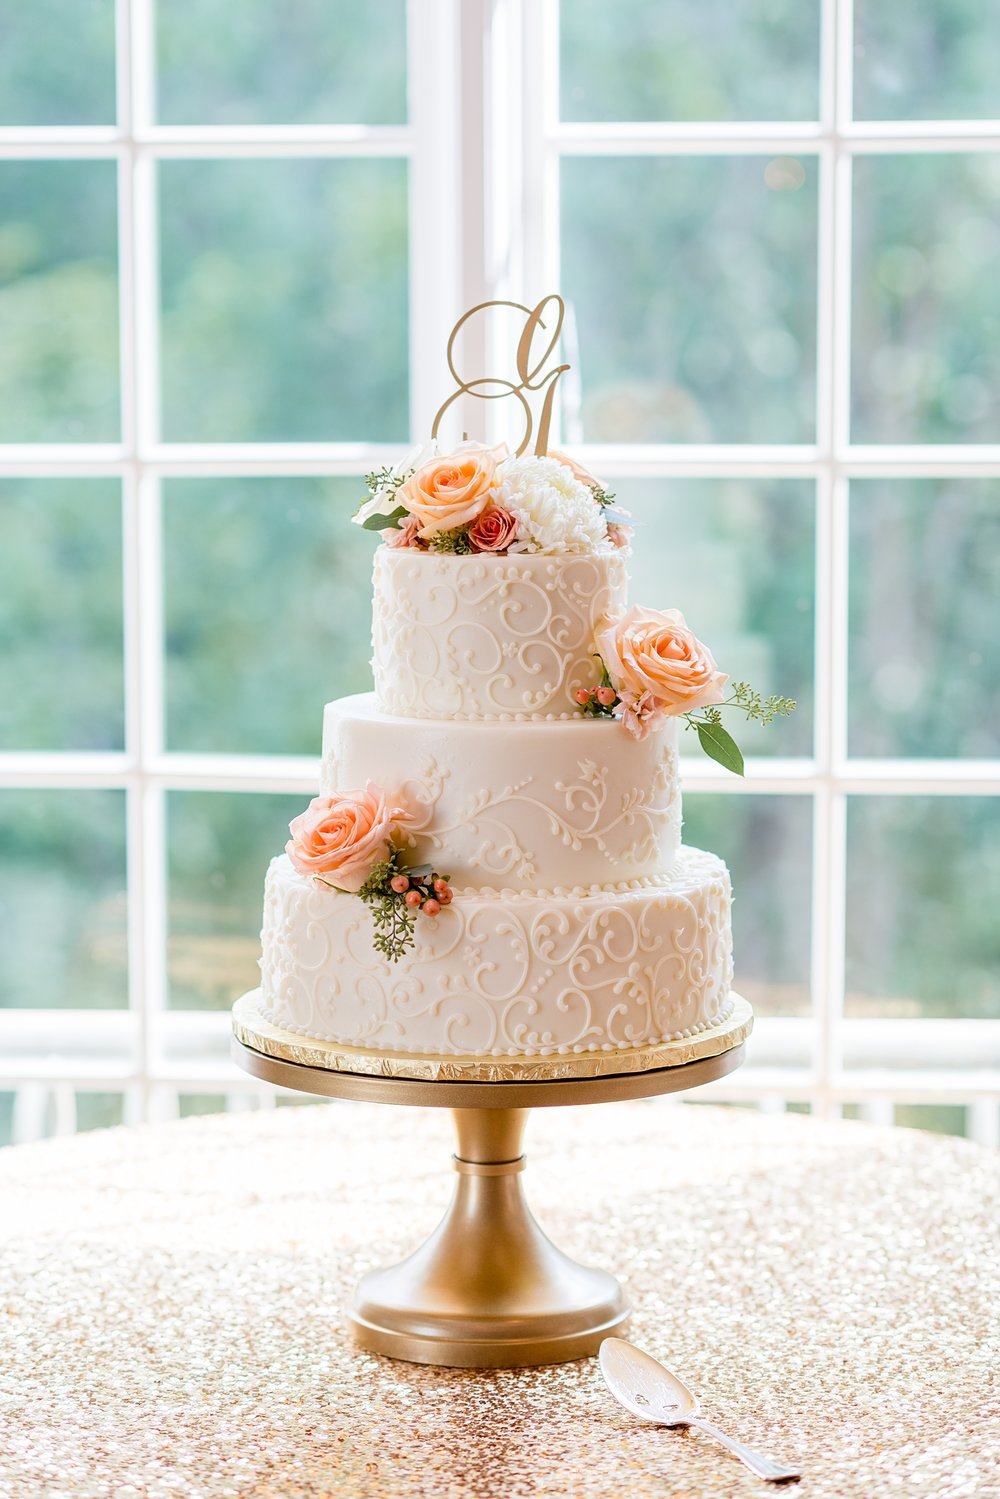 Hillcrest Country Club Wedding  | Indiana Wedding Venues | Elegant White and Coral Wedding Cake